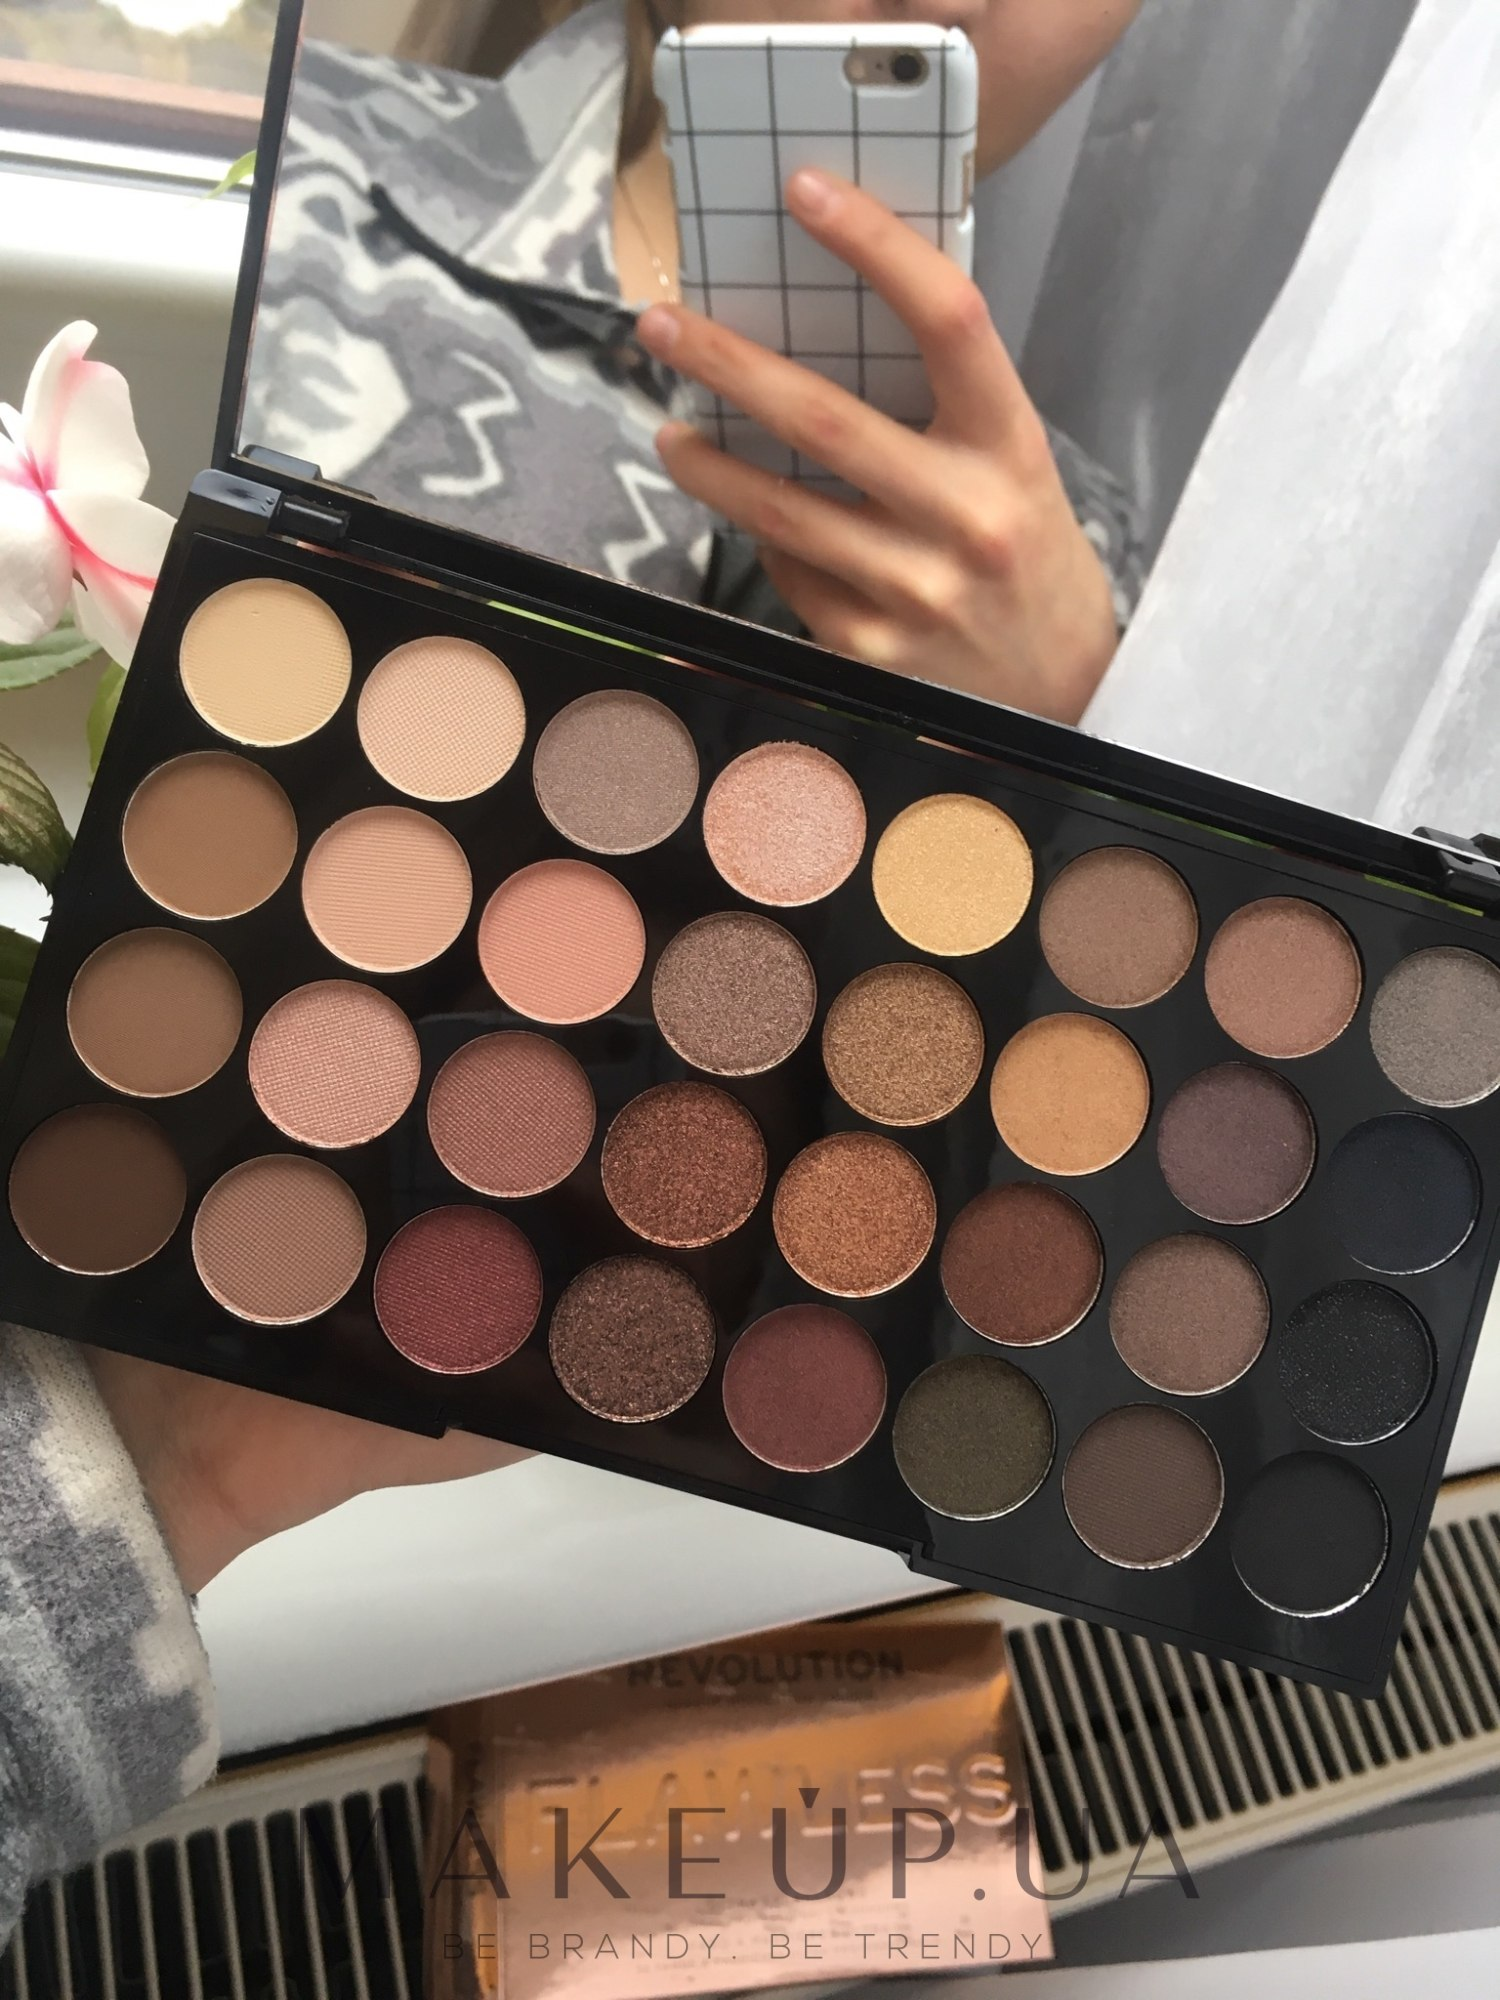 ... beyond flawless makeup revolution ultra 32 shade eyeshadow palette flawless matte Мені сподобалися хороша пігментація не ...